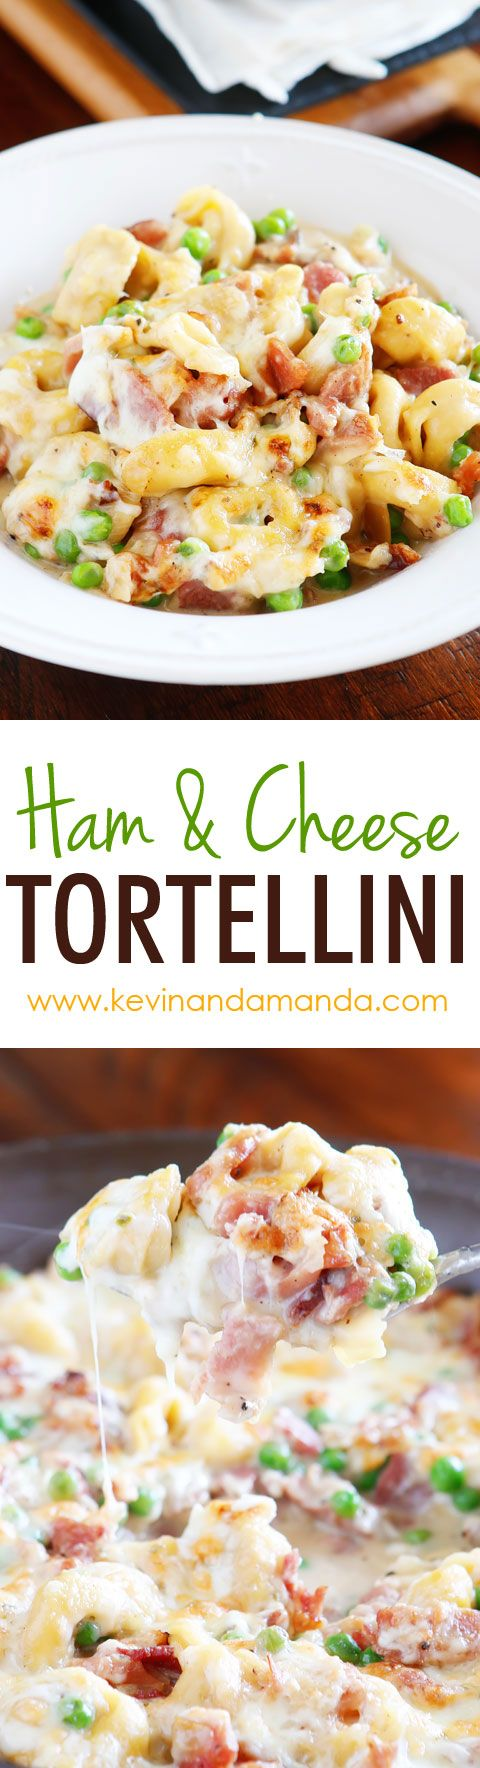 A delicious cheese tortellini recipe with garlic butter sauce. You can use frozen tortellini. Only